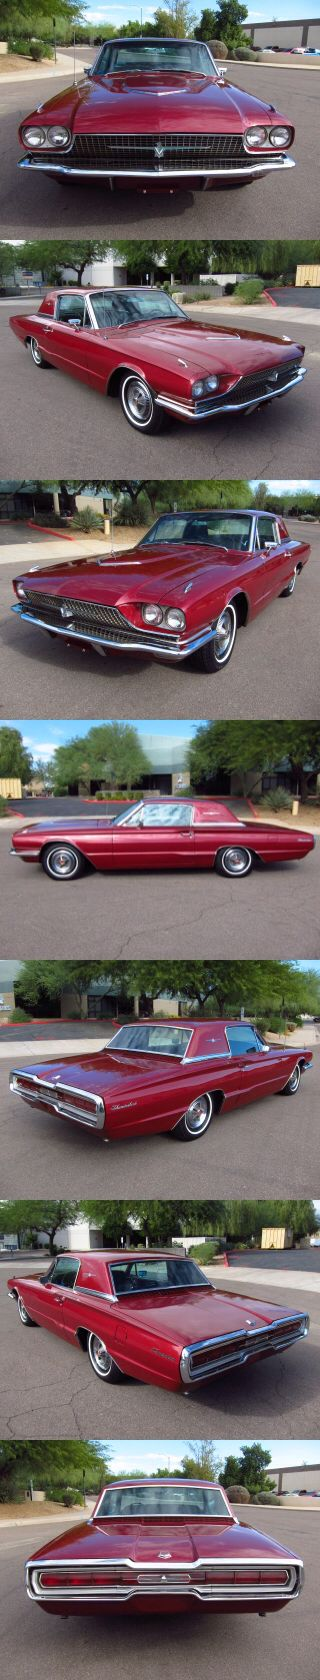 1966 Ford Thunderbird..Re-pin Brought to you by agents of #CarInsurance at #HouseofInsurance in Eugene, Oregon